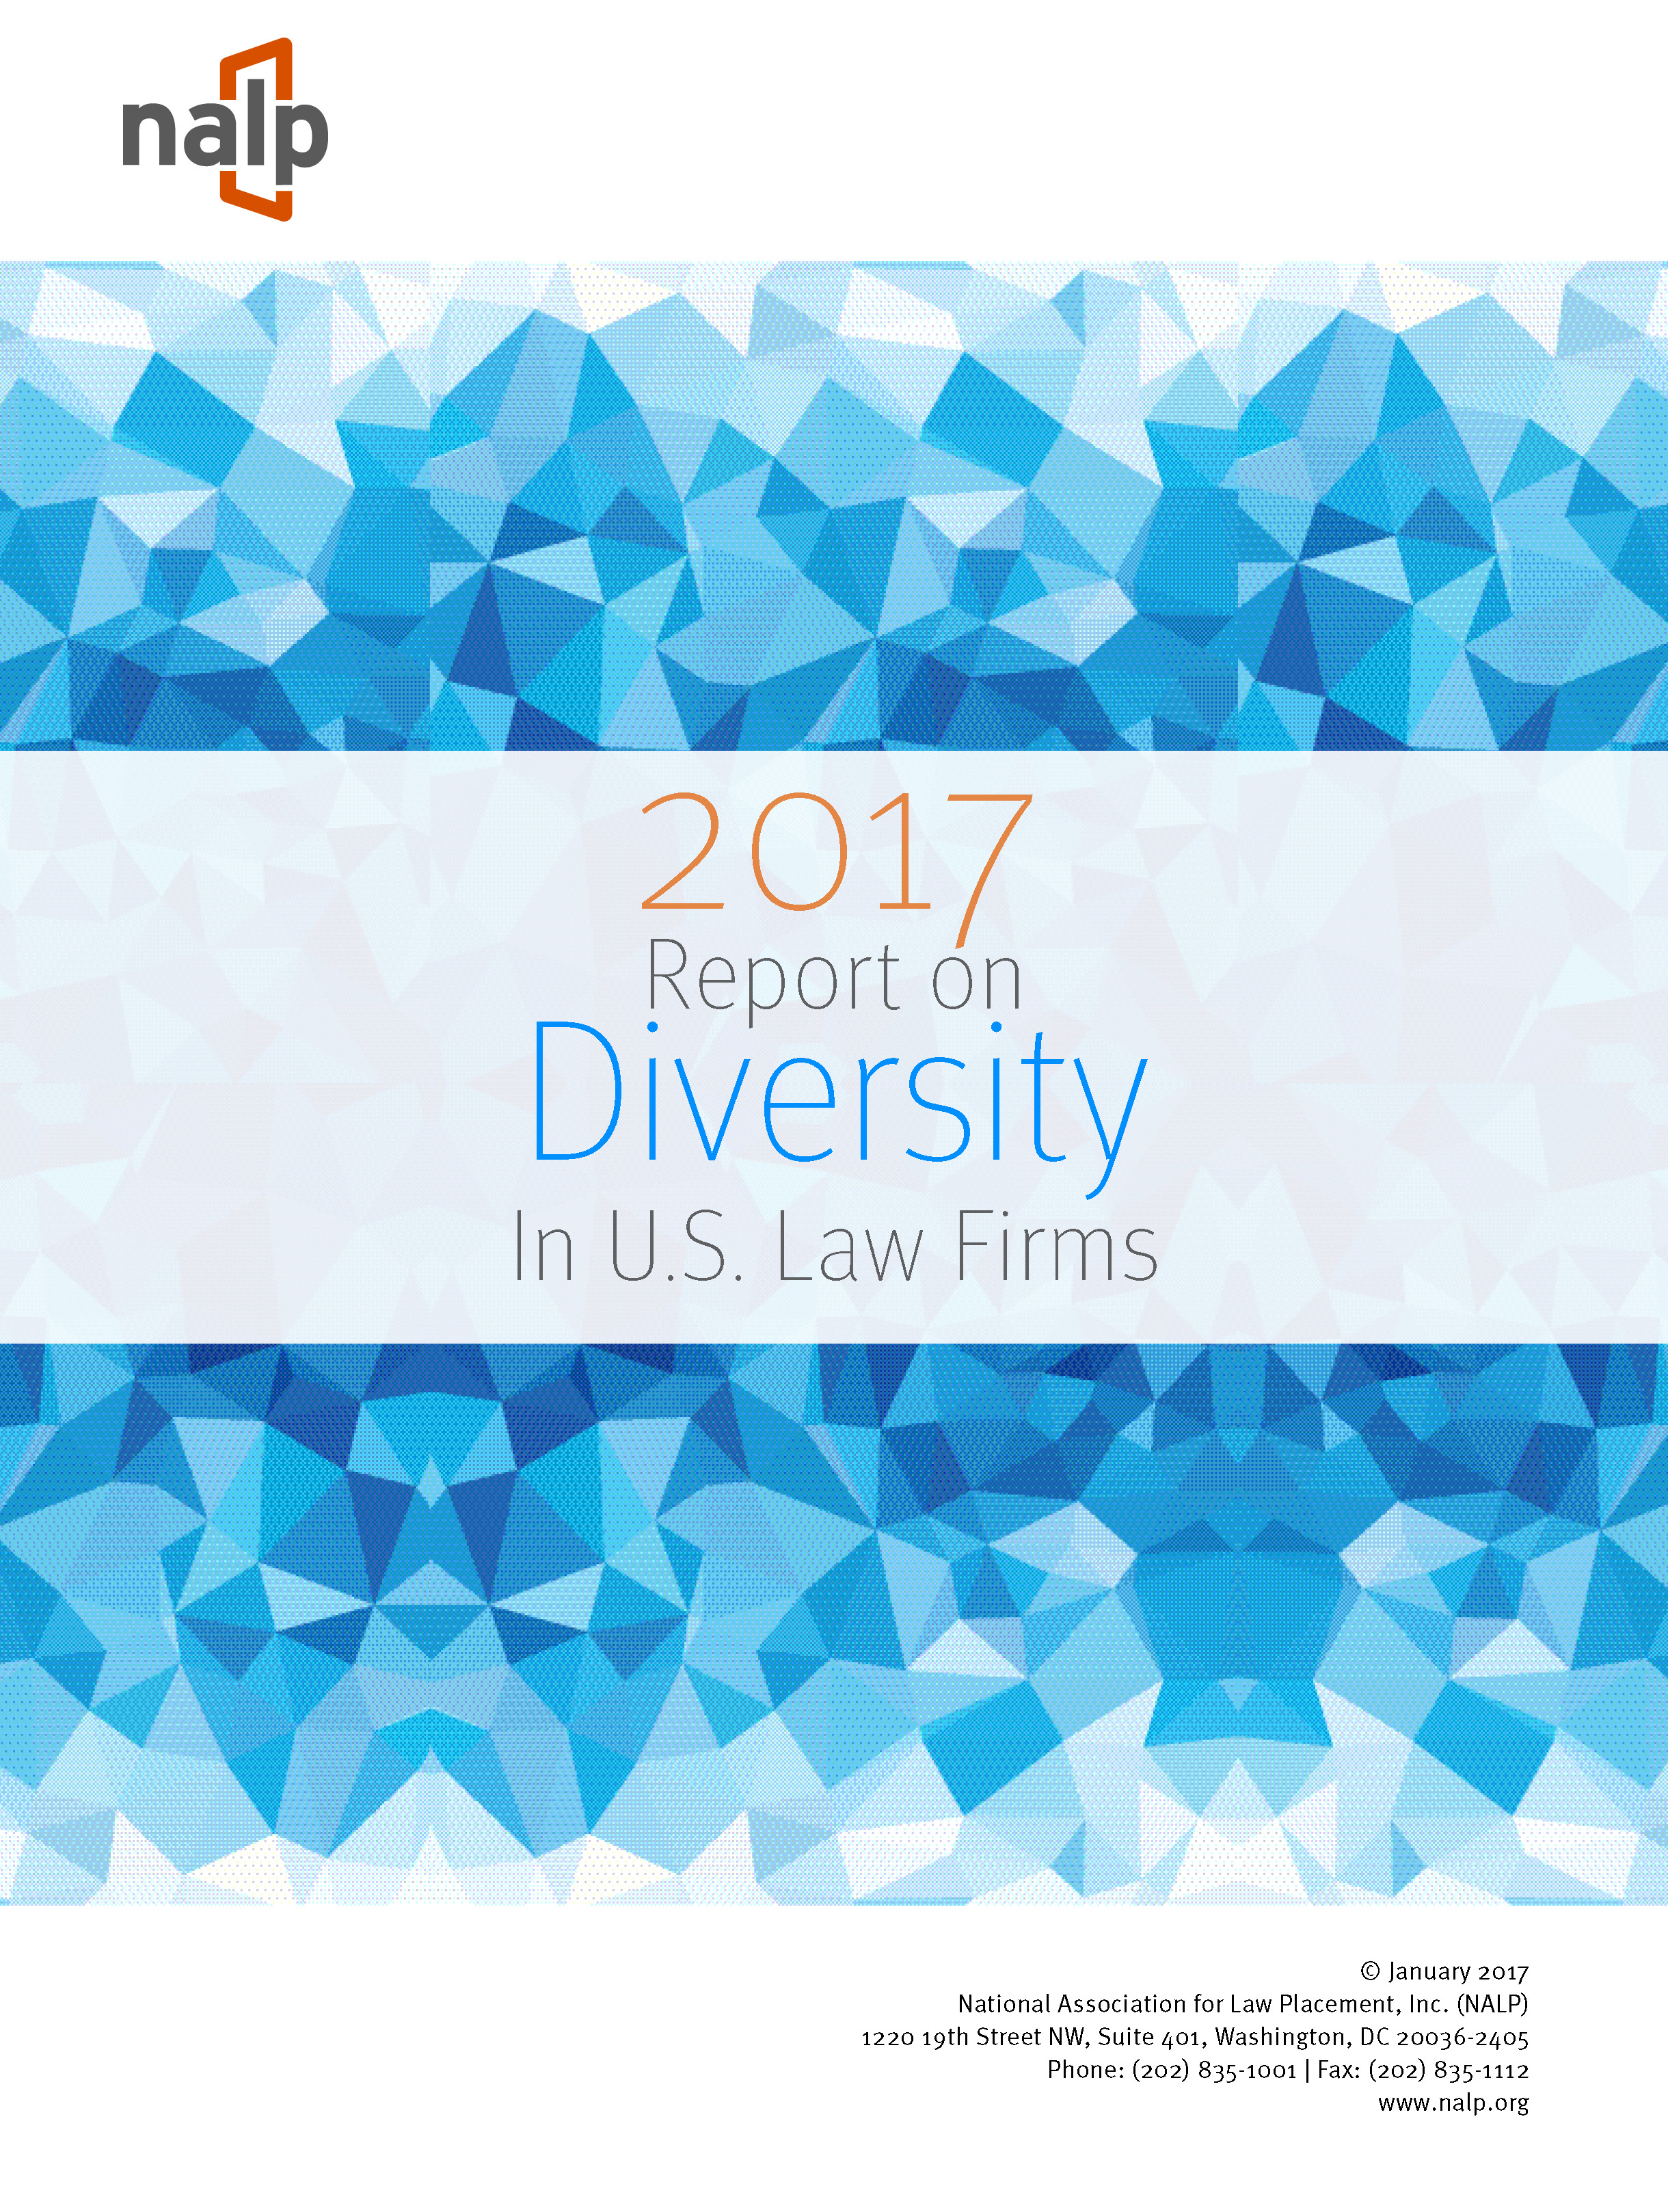 NALP 2017 Report on Diversity in U.S. Law Firms